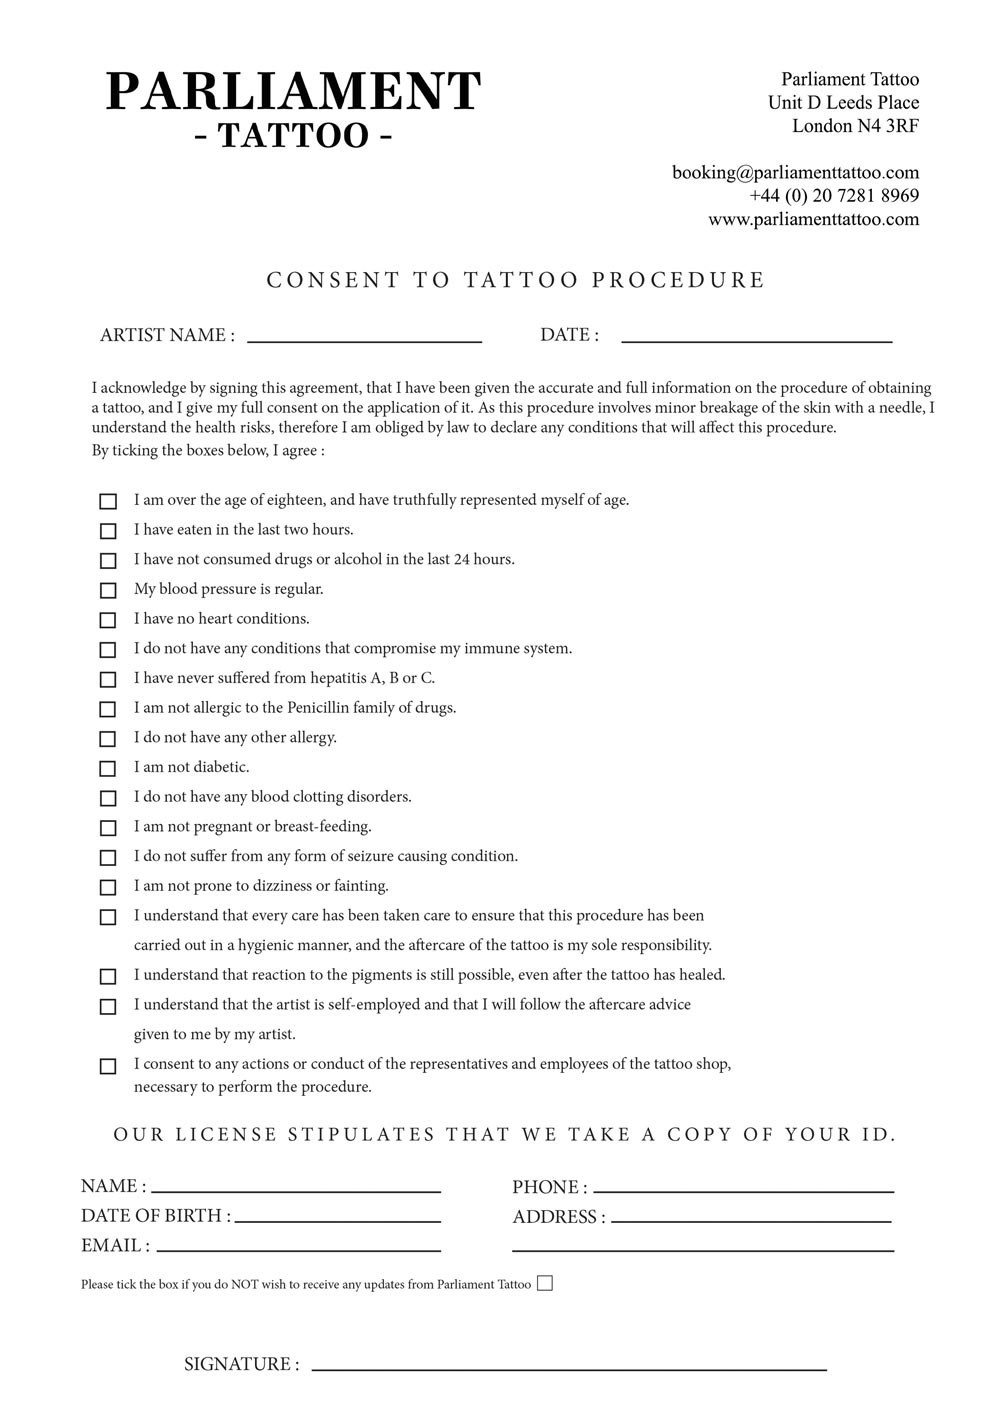 Consent Form Parliament Tattoo – Consent Form